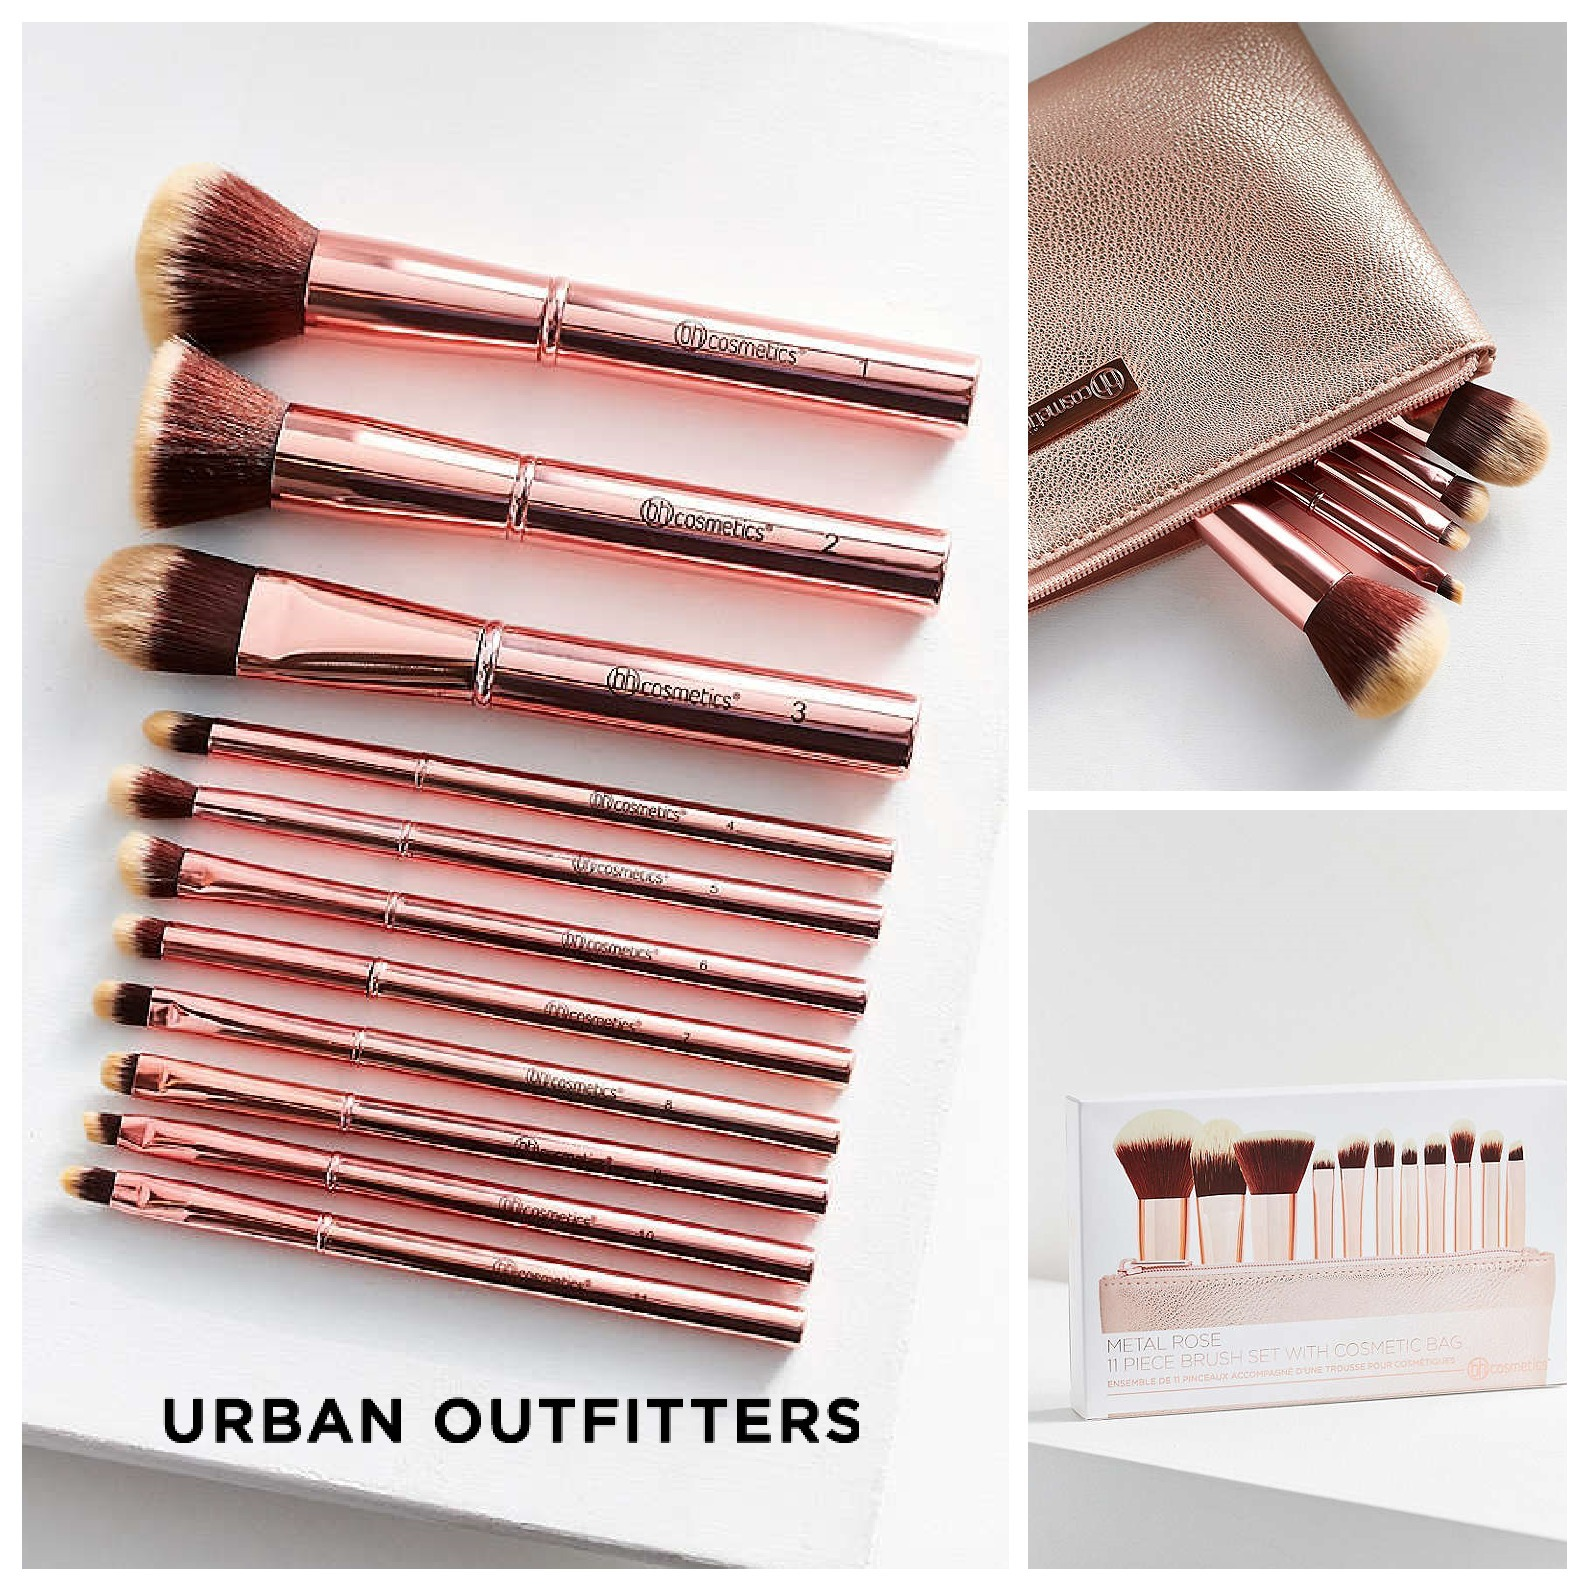 Urban Outfitters☆bh cosmetics 11 Piece Makeup Brush 税送込